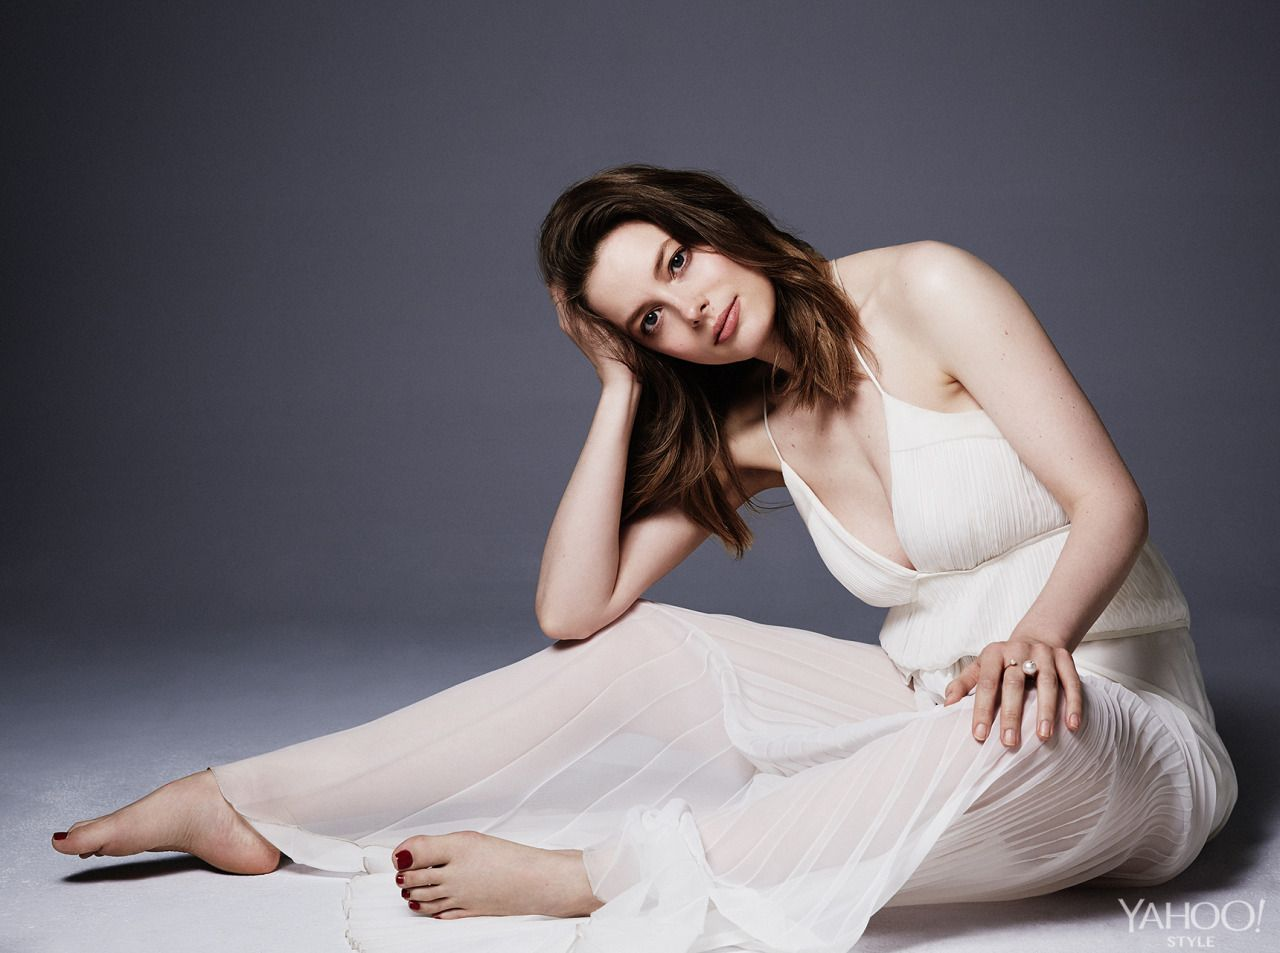 Gillian Jacobs Photo Shoot For Yahoo Style February 19